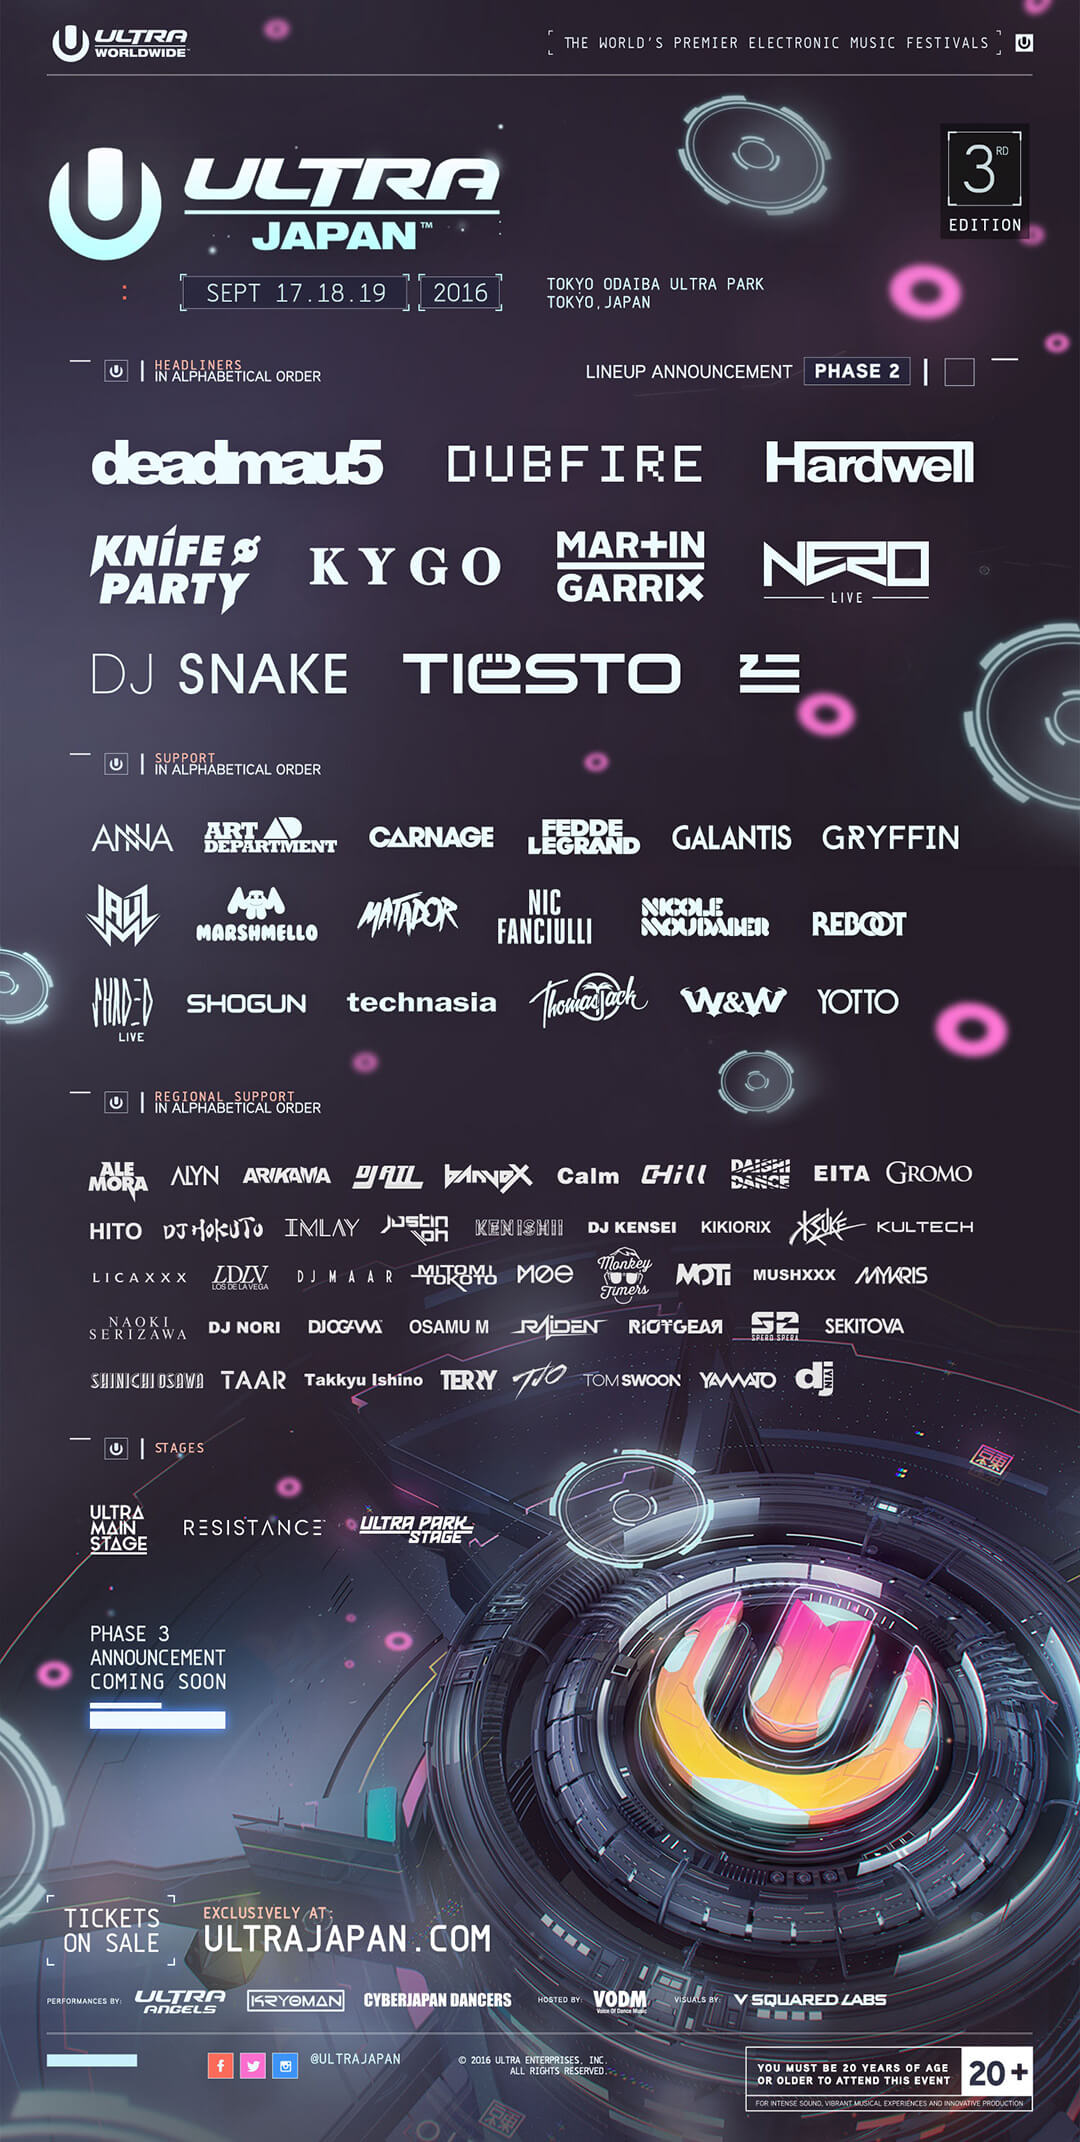 ULTRA Japan Announces Phase Two Lineup